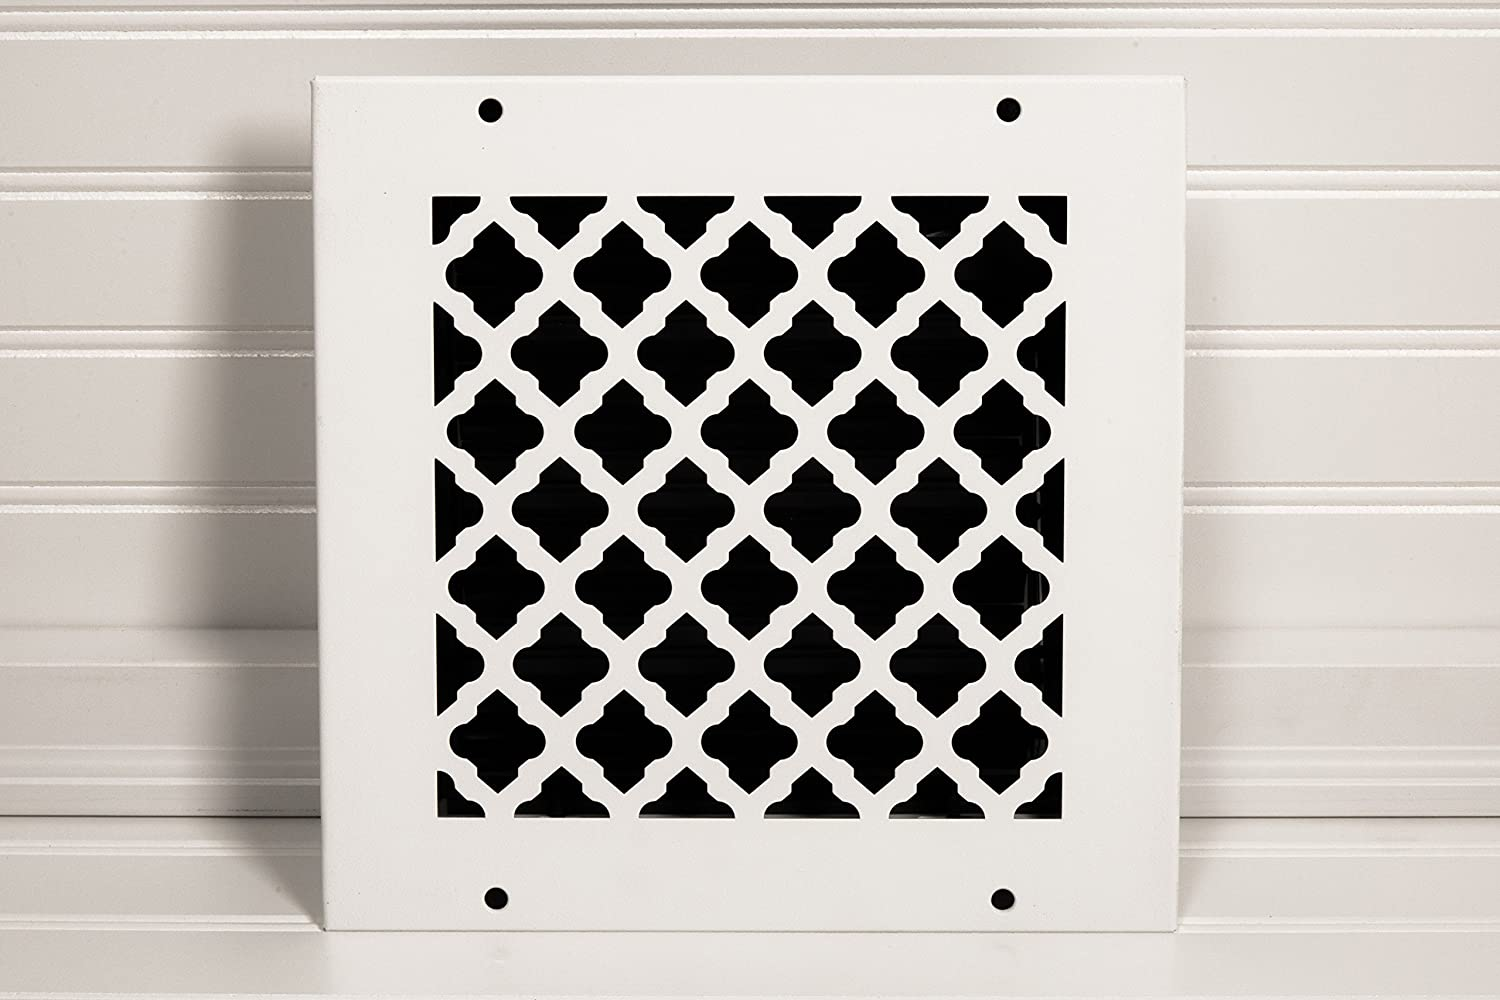 White with mounting Screws SteelCrest BTU8X8RWHH Bronze Series Designer Wall//Ceiling Vent Cover